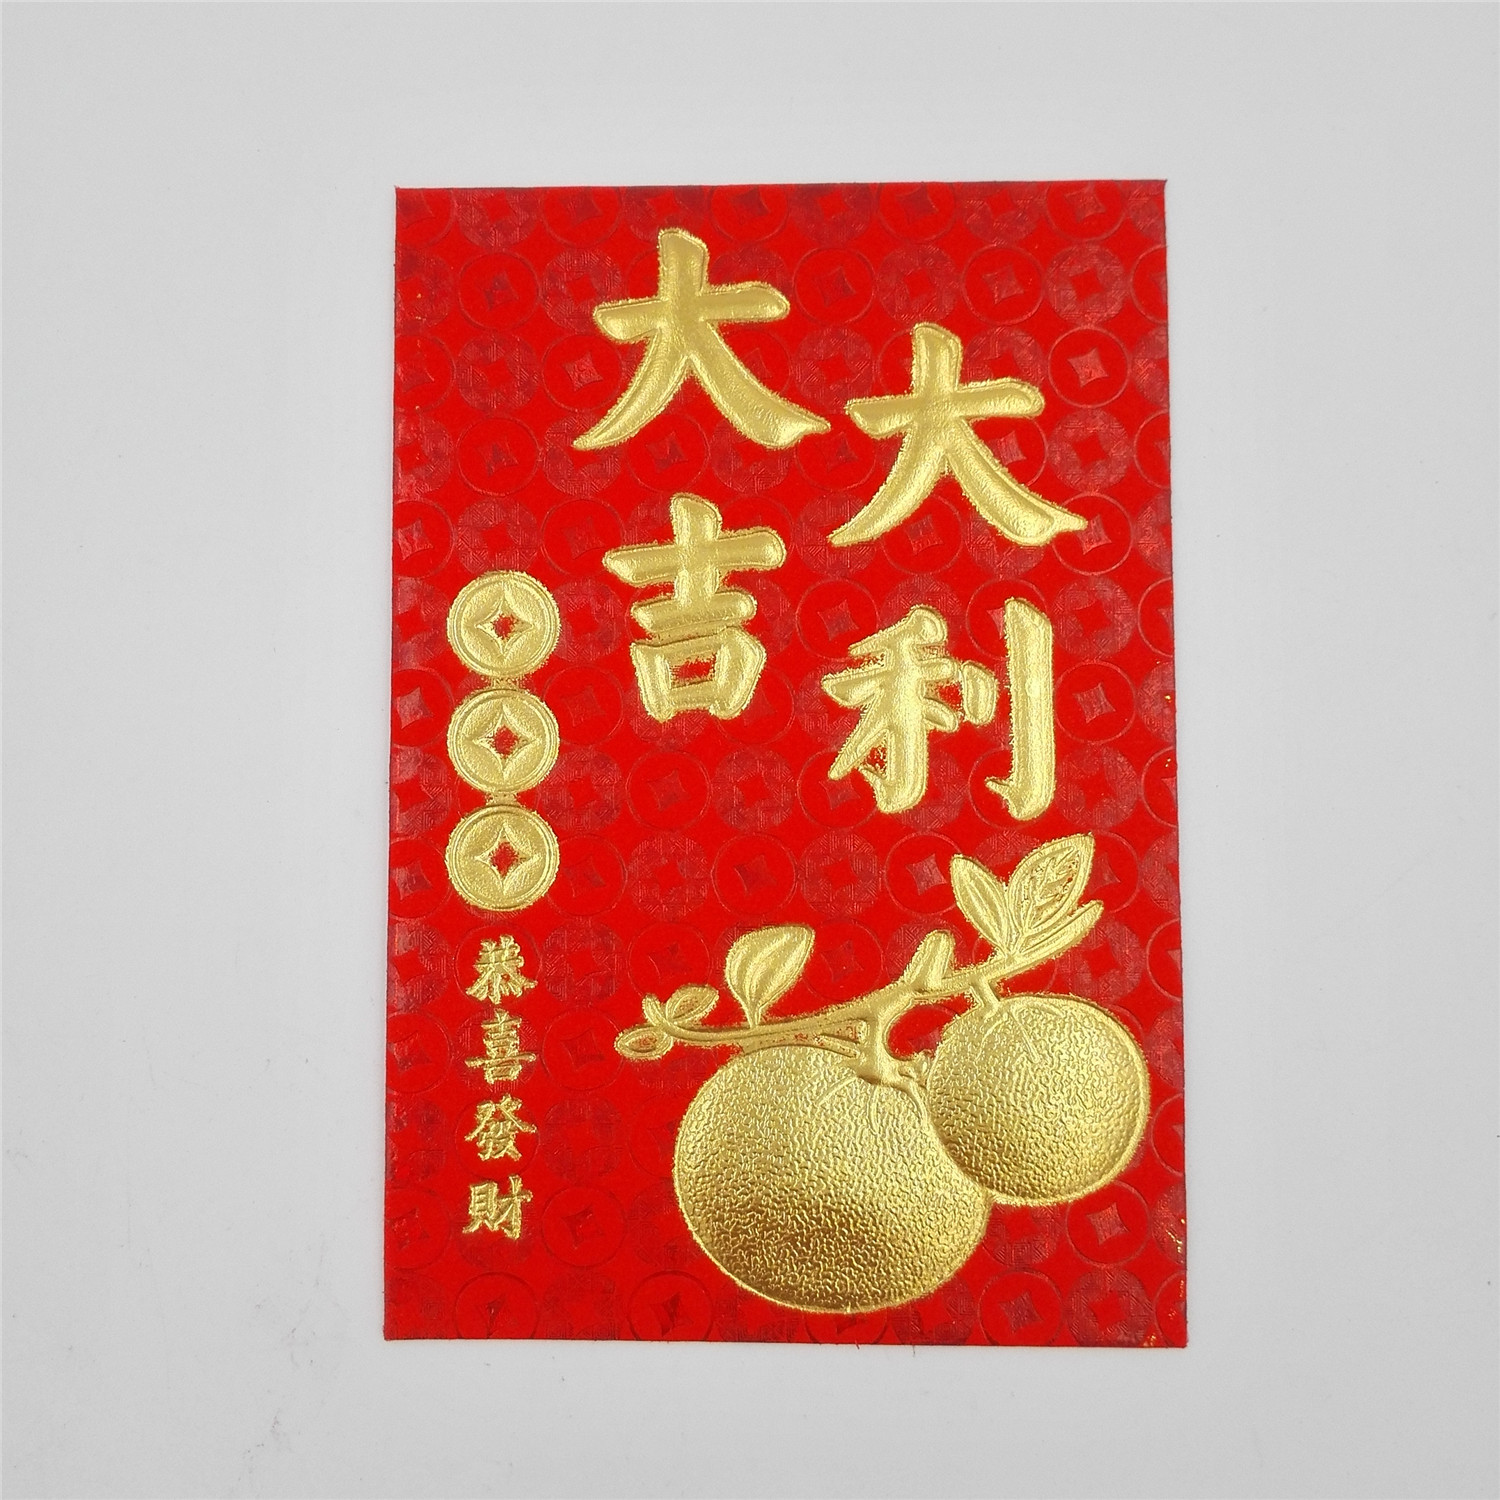 25/50× RED PACKET Red Envelope Chinese New Year Lucky ...